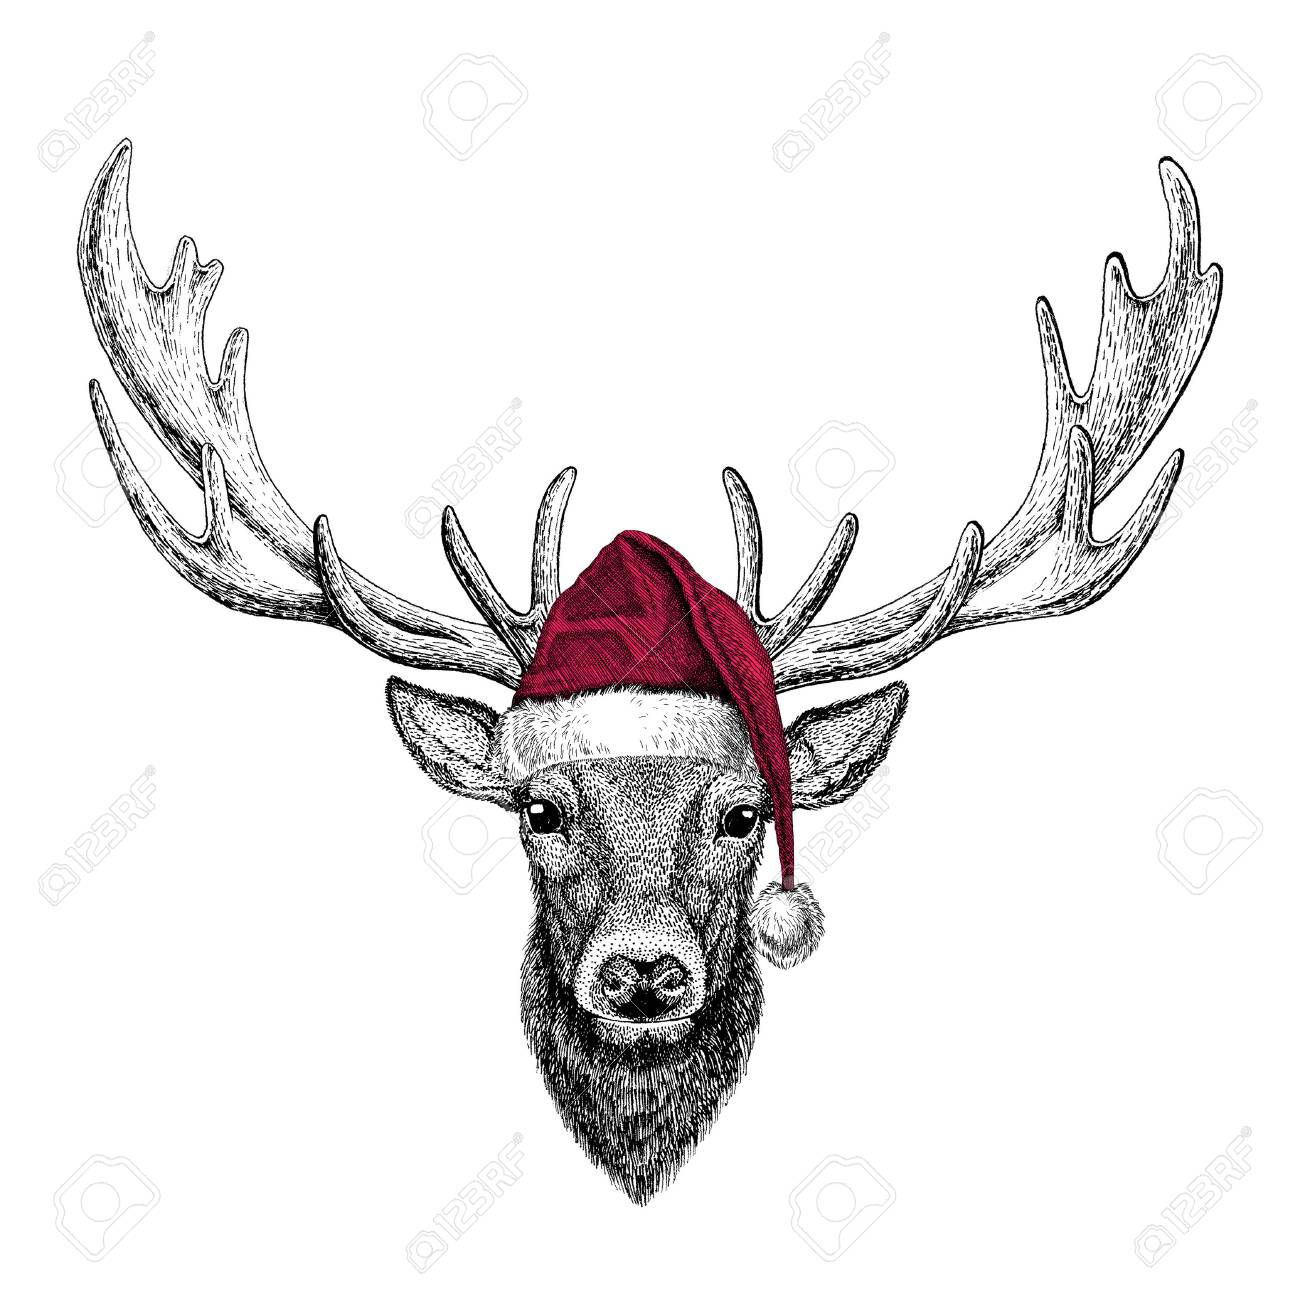 Christmas illustration Wild animal wearing christmas santa claus hat Red winter hat Holiday picture Happy new year - 81961973